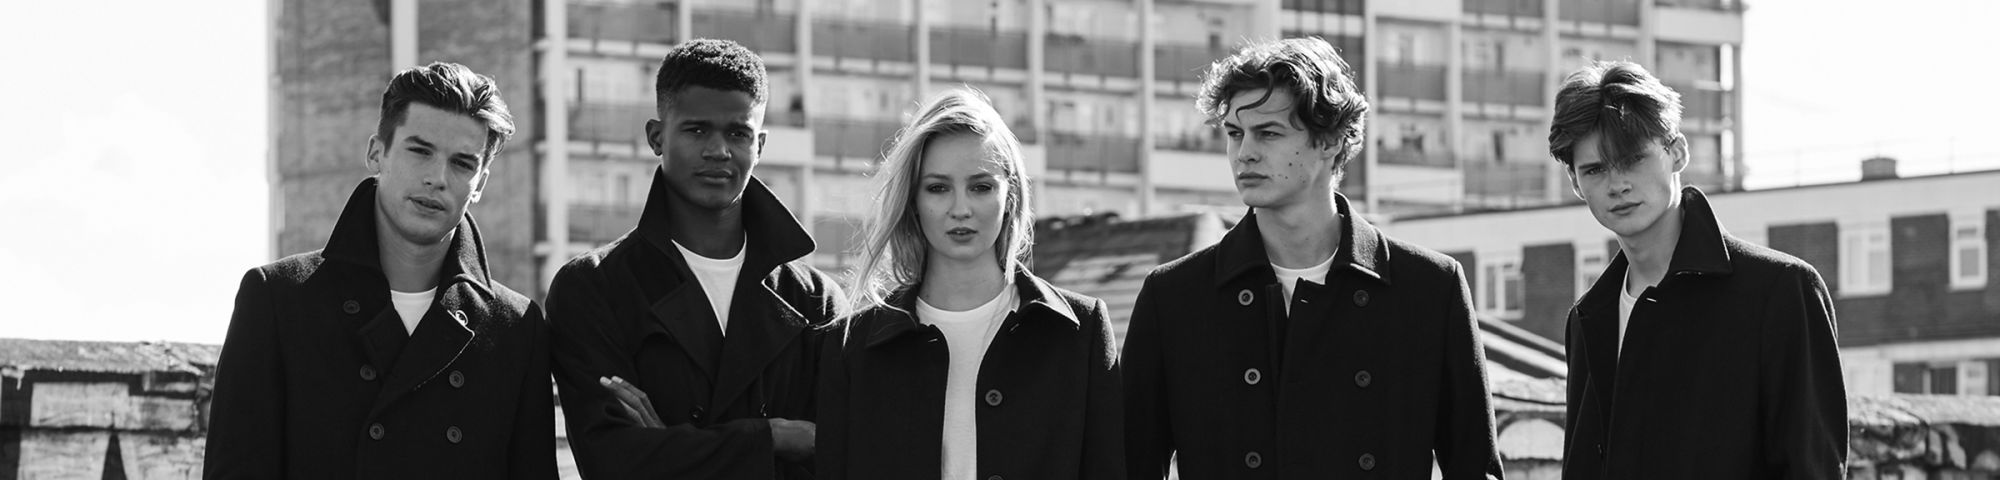 4 male models and 1 female model wearing black and white rustic clothing standing at a block of deserted flats